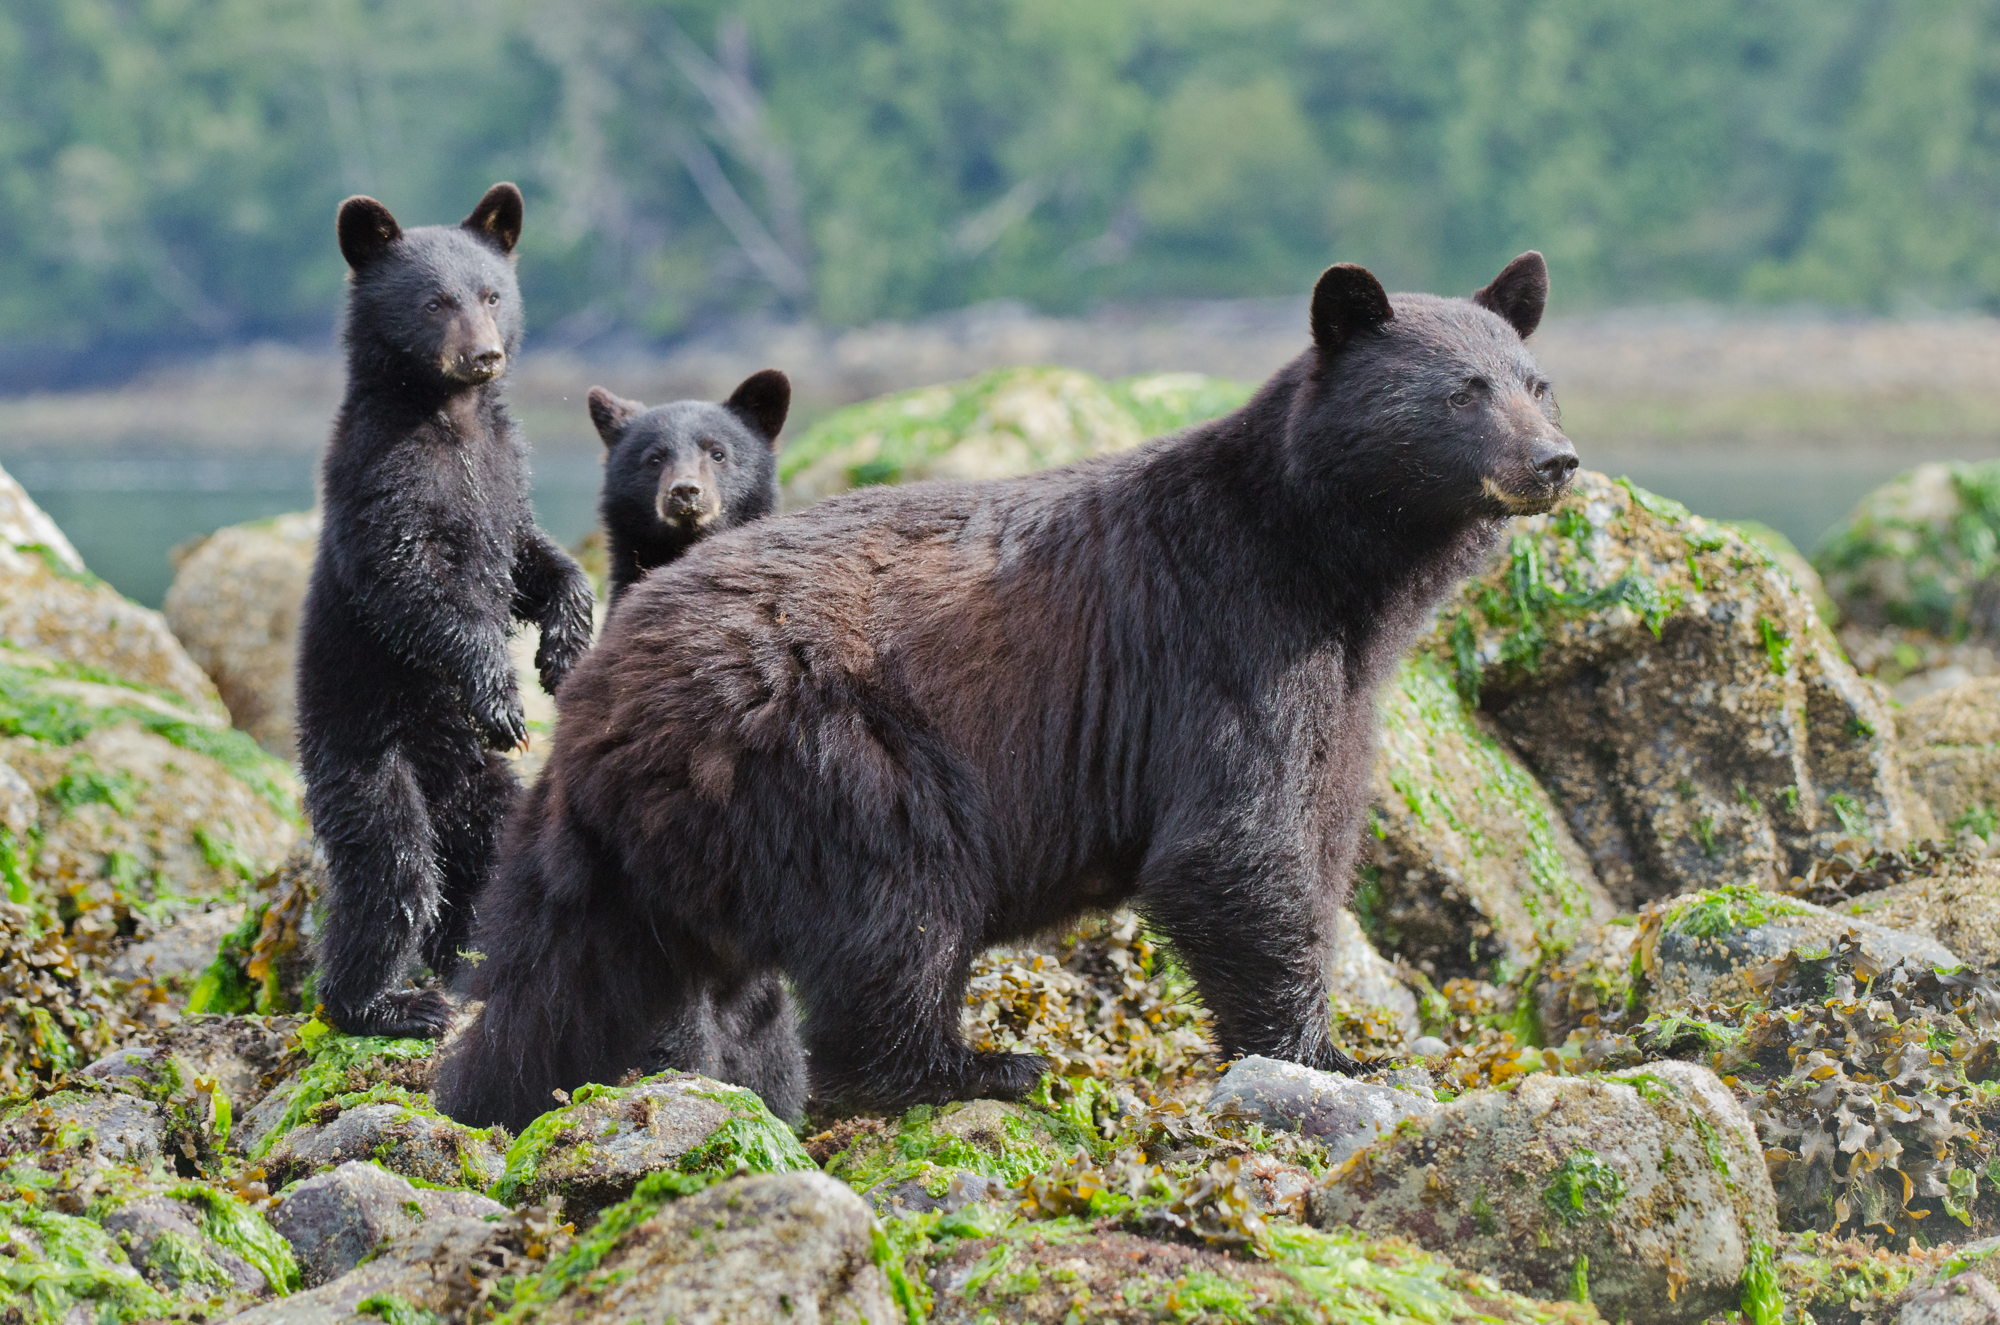 A female black bear and her two cubs spot danger on the rocky shore.